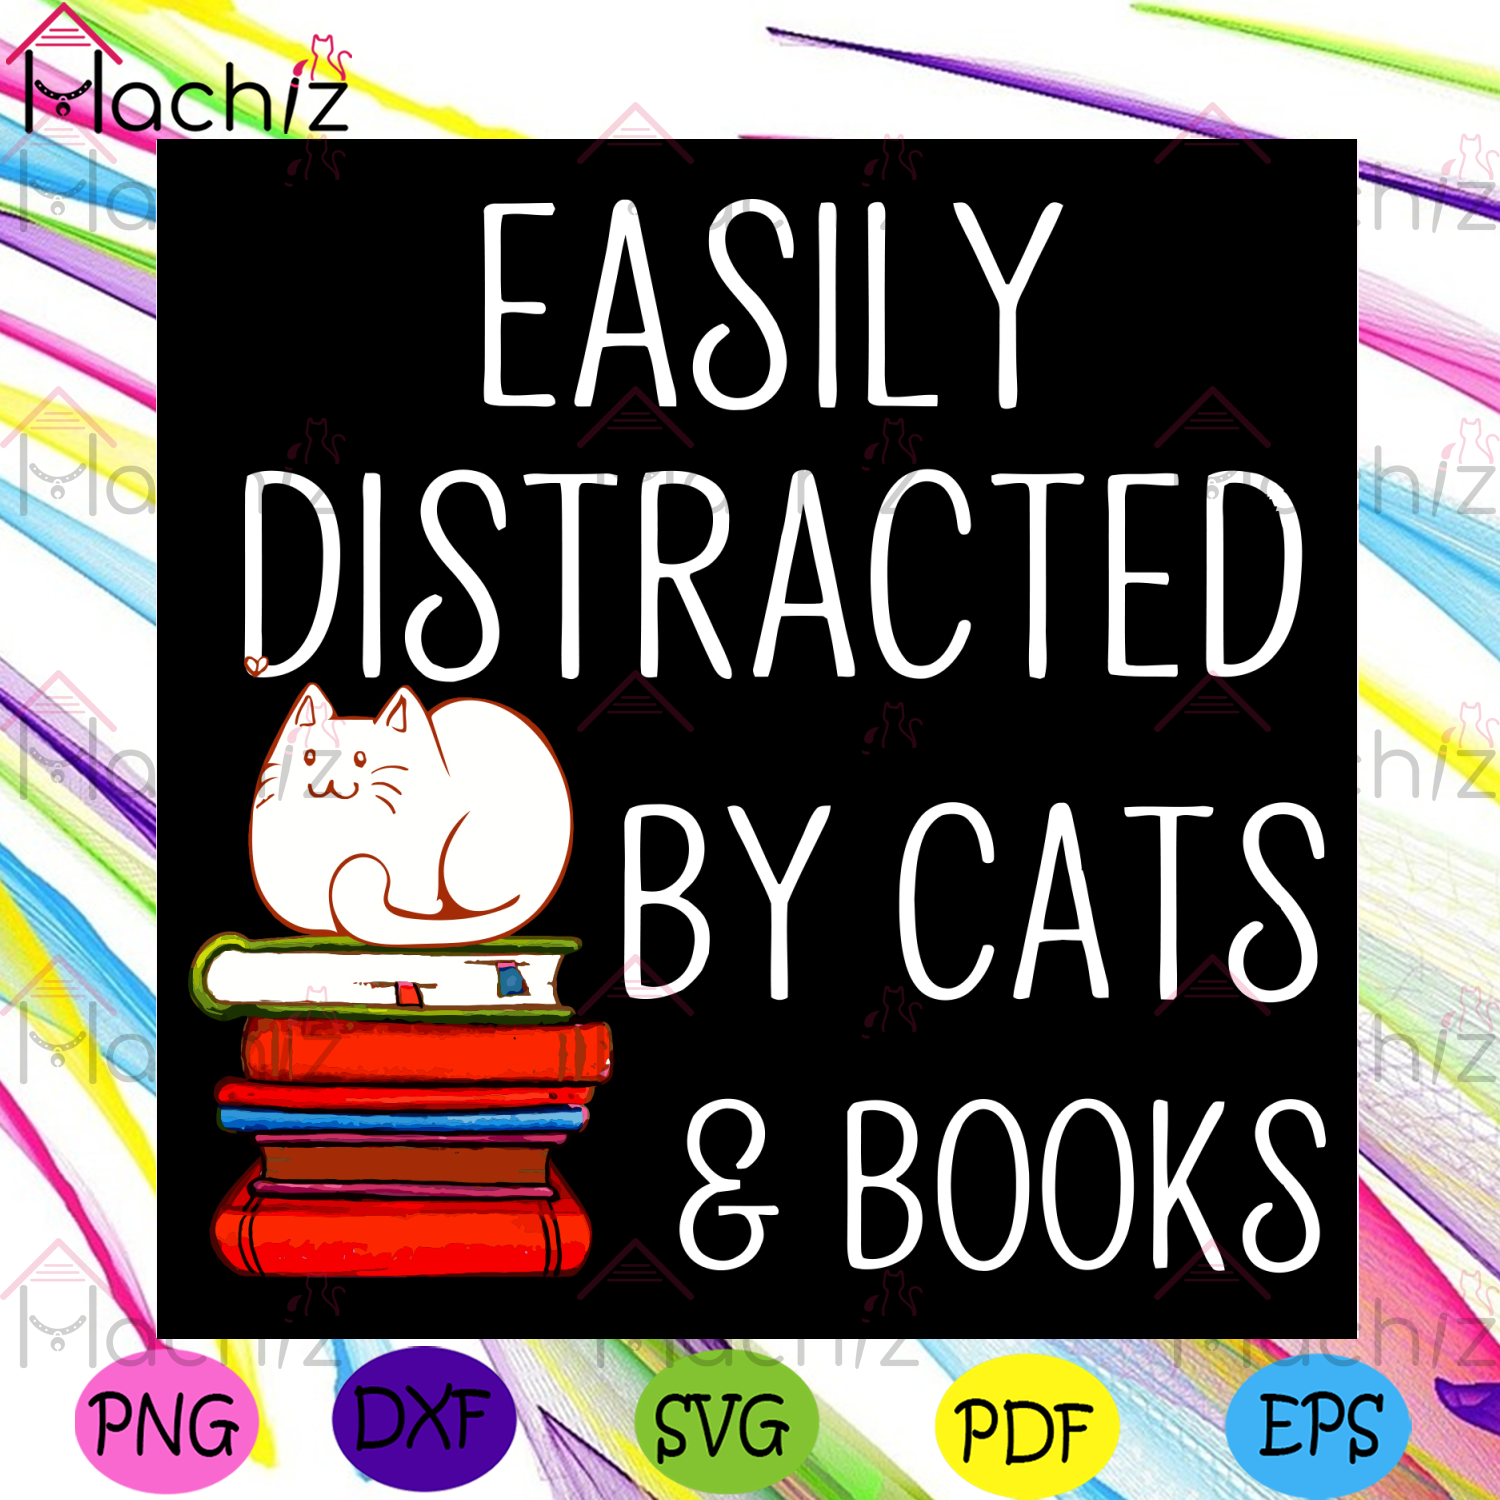 Easily Distracted By Cats And Books Svg, Trending Svg, Cat Svg, Book Svg, Cat Lovers Svg, Book Lovers Svg,Distracted Svg, Cat Gift Svg, Reading Book Svg, Reading Svg, Reading Lovers Svg, Reader Svg, Cat Mom Svg, Animal Svg